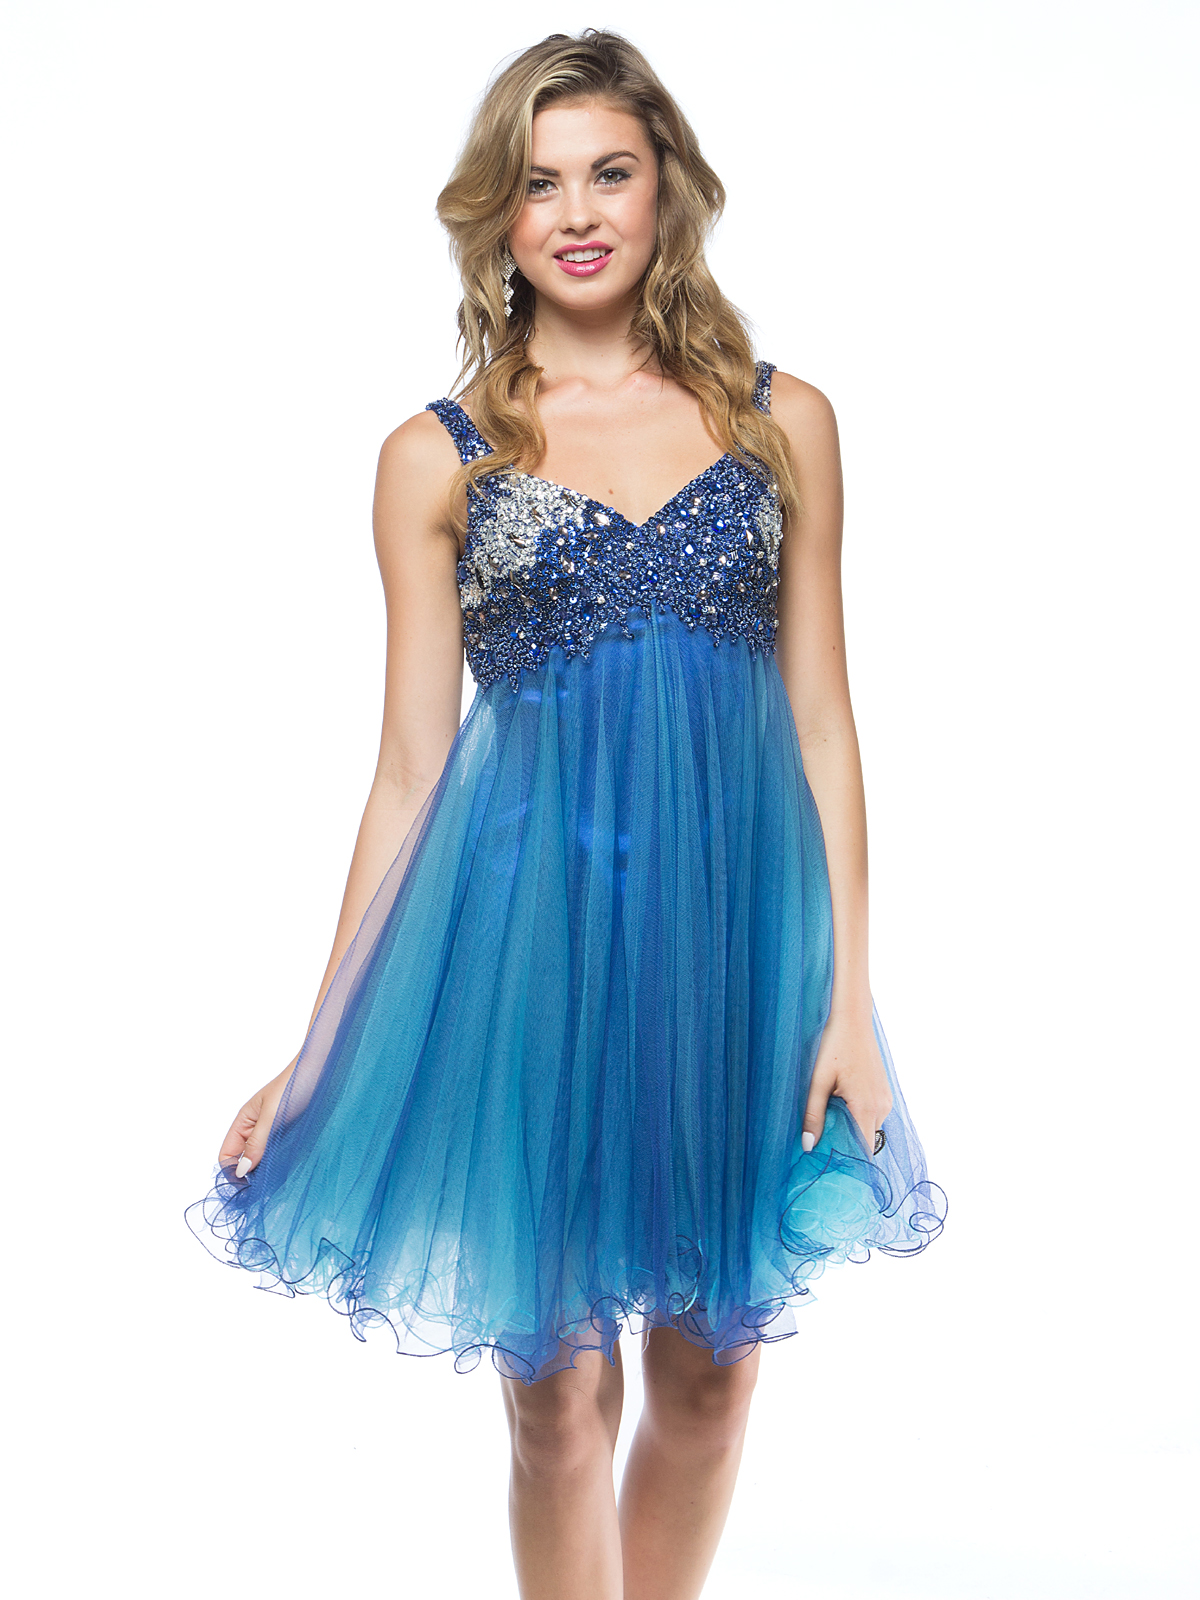 Sequin Bodice Baby Doll Party Dress | Sung Boutique L.A.